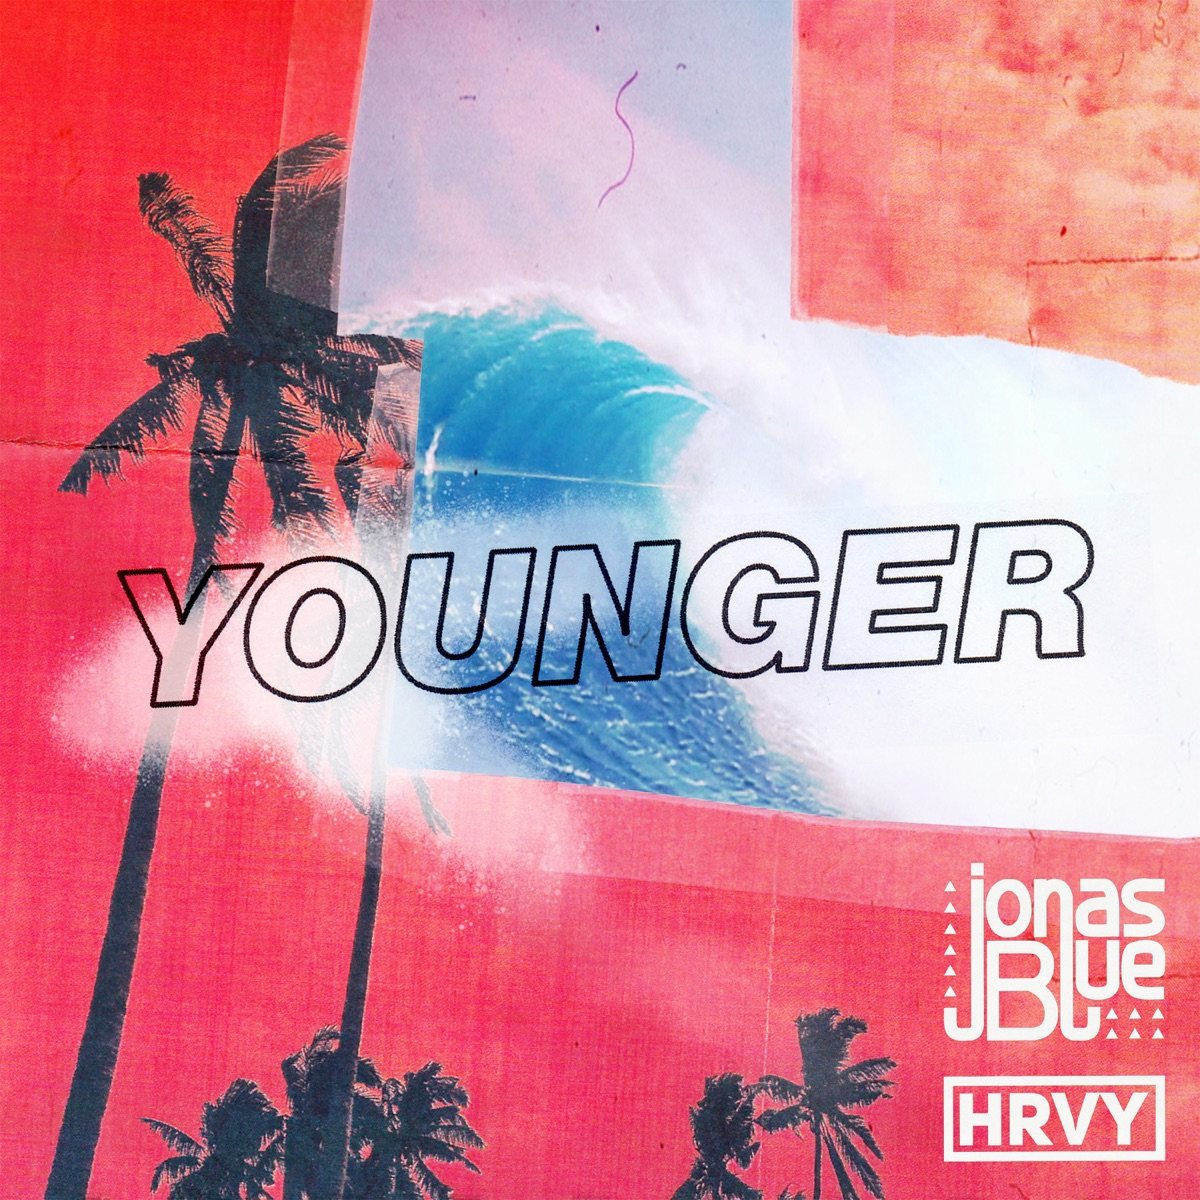 Jonas Blue & HRVY   Younger   austriancharts.at